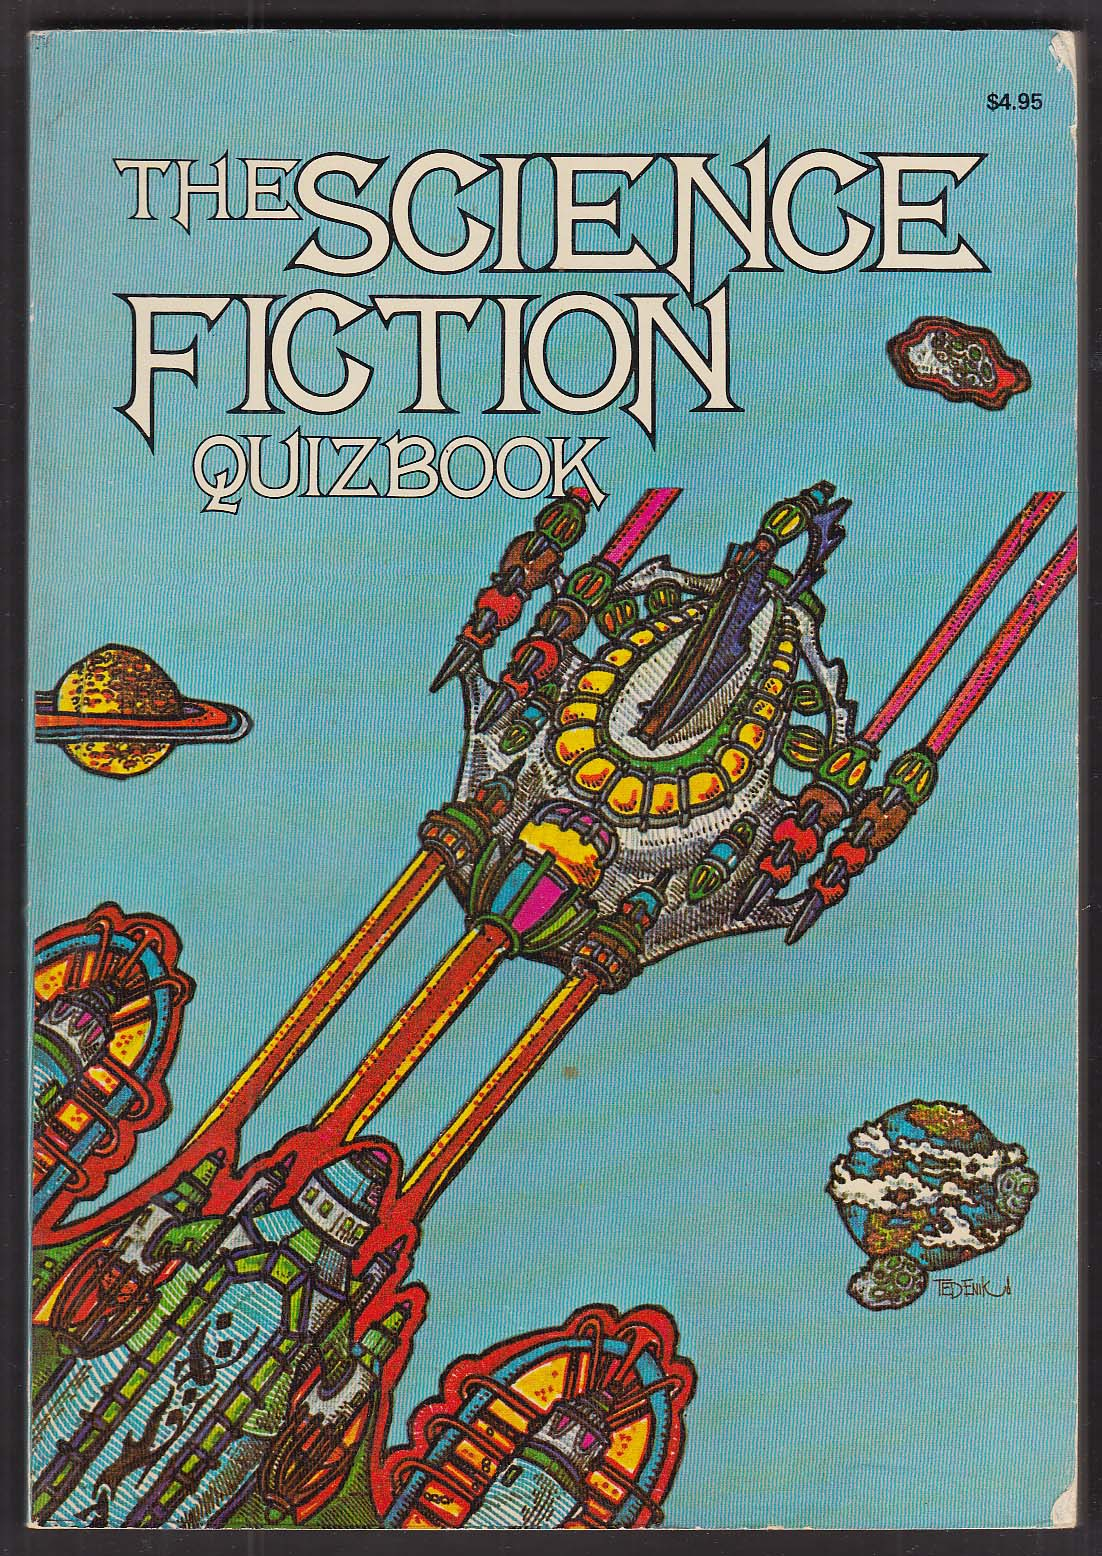 Martin Last Baird Searles: Science Fiction Quizbook 1976 pb Vincent DiFate illus